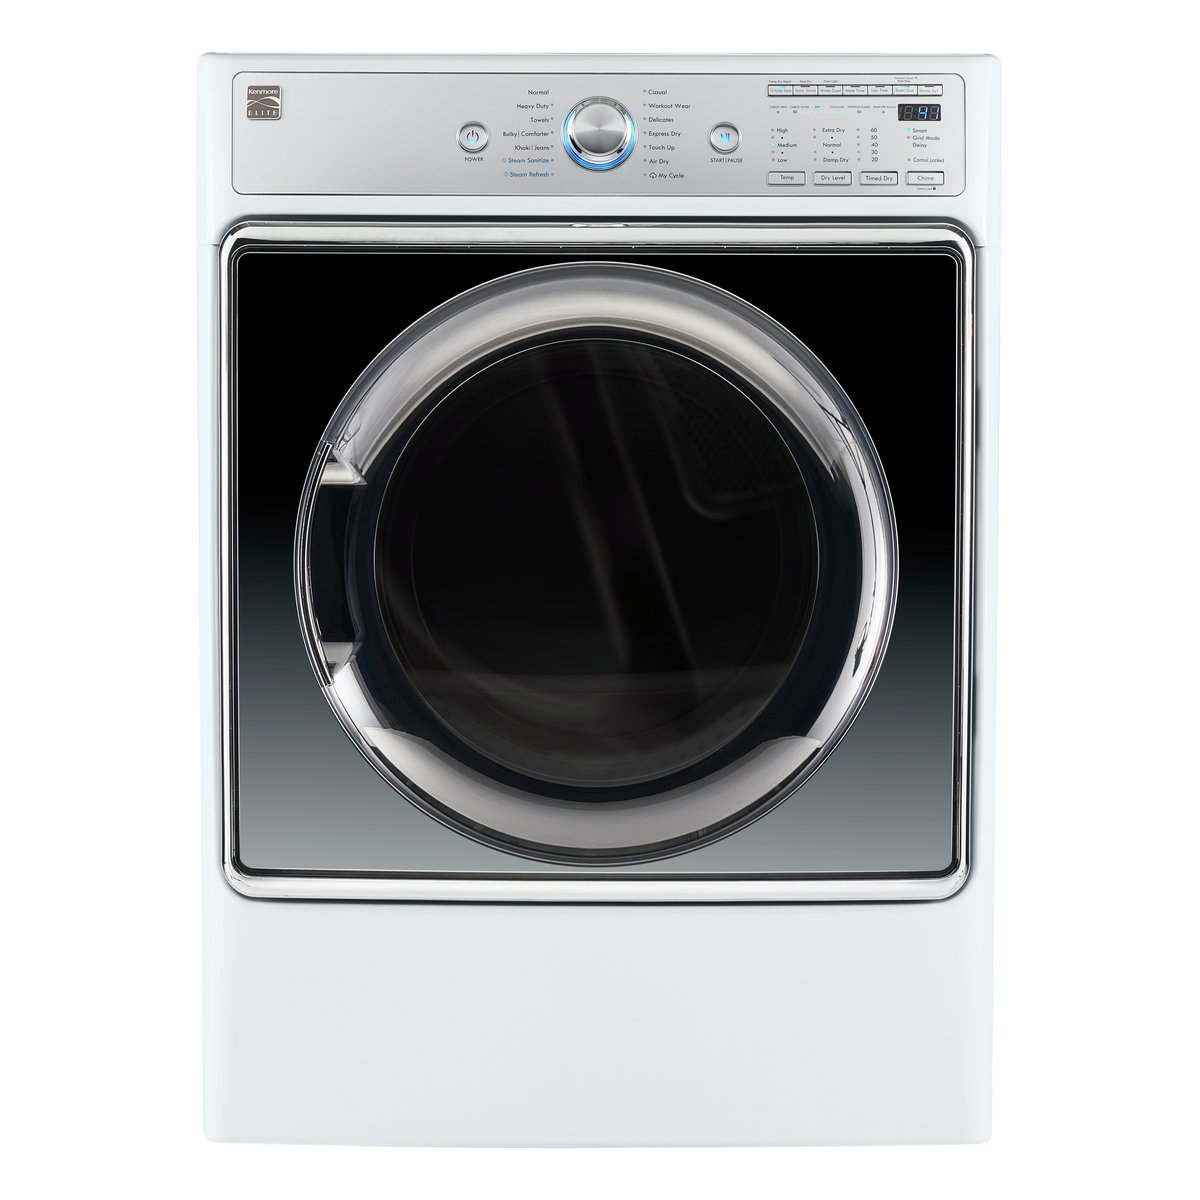 Kenmore Smart 81982 9.0 cu. ft. Electric Dryer with Accela Steam Technology in White - Compatible with Amazon Alexa, includes delivery and hookup (Available in select cities only)